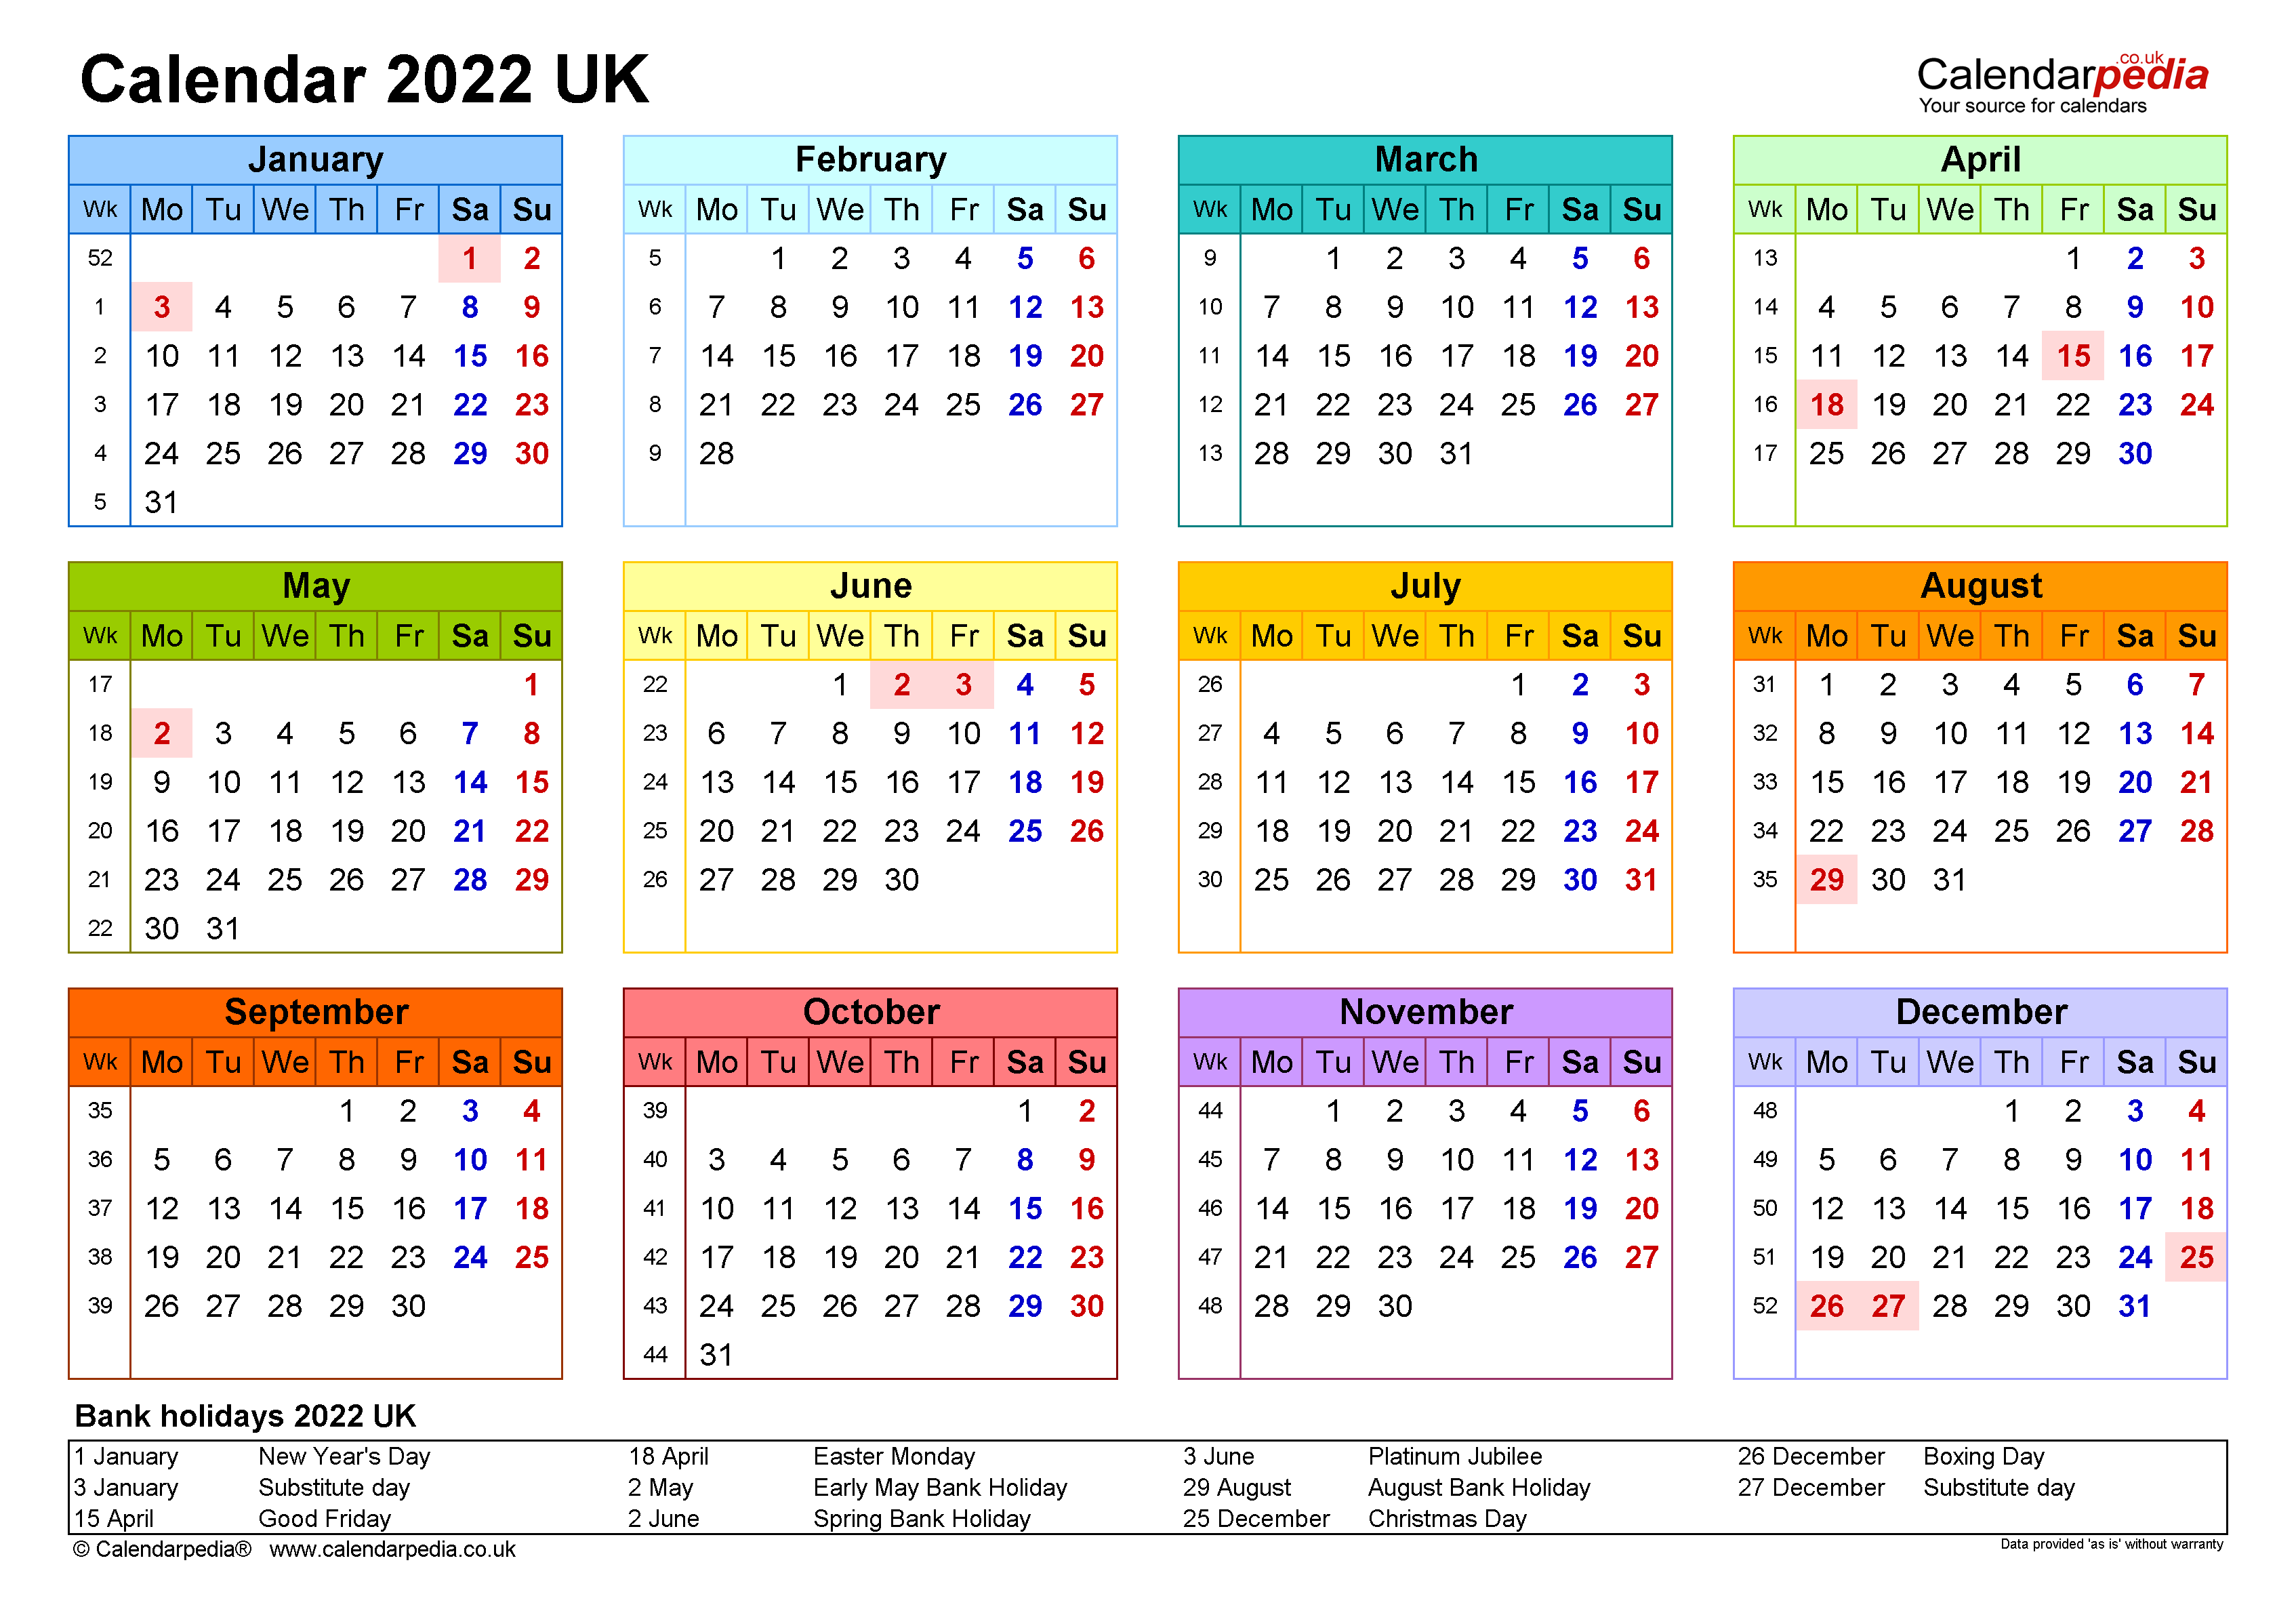 Calendar 2022 (UK) - free printable PDF templates